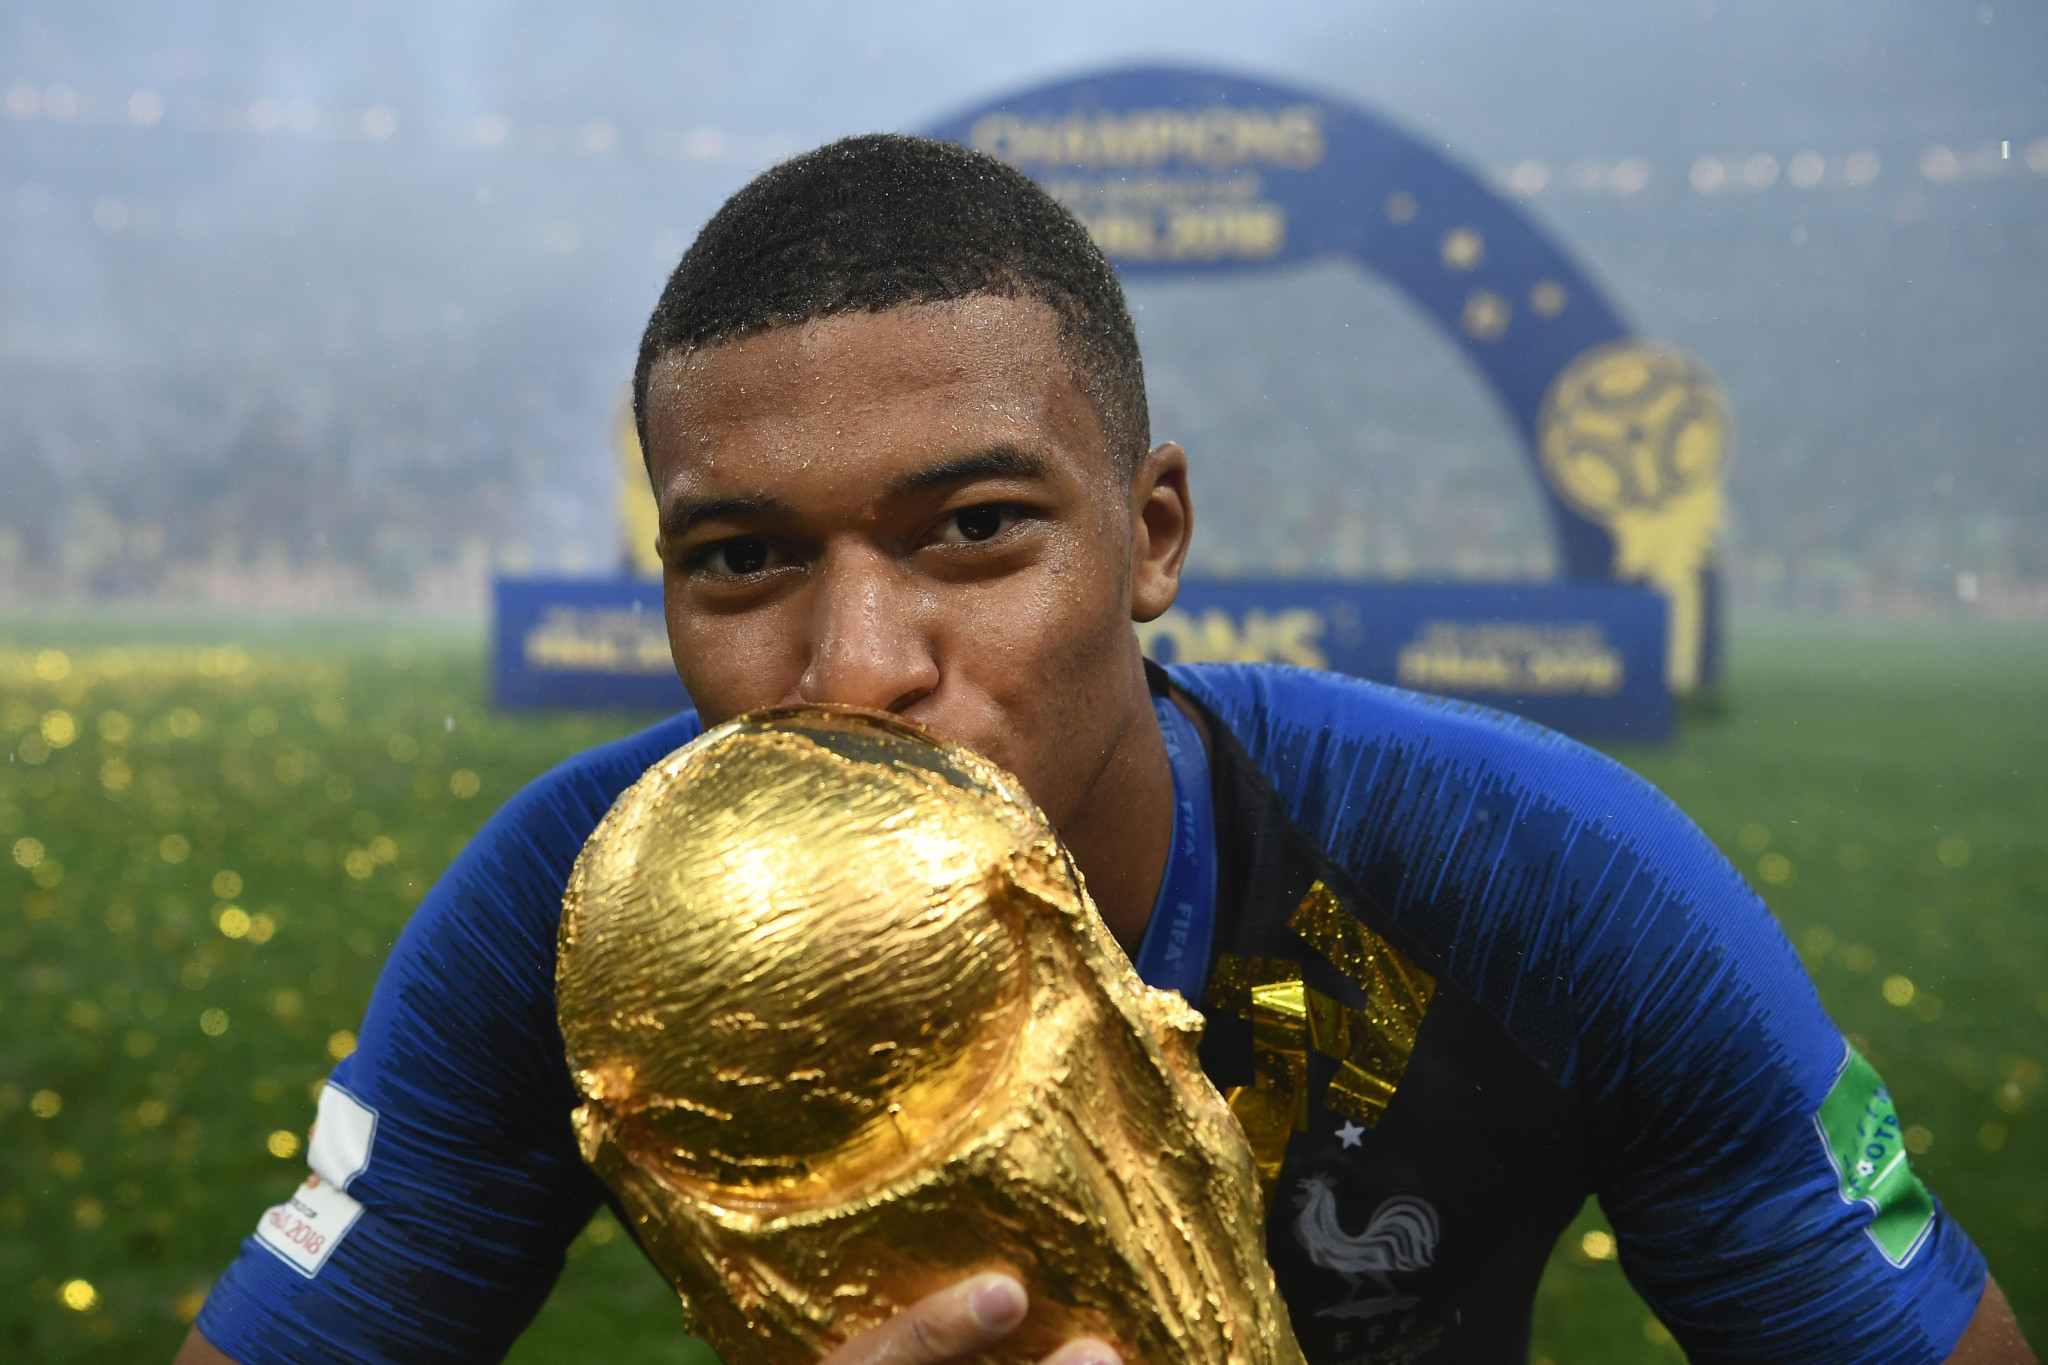 French World Cup winner Mbappe wants to play at Tokyo 2020